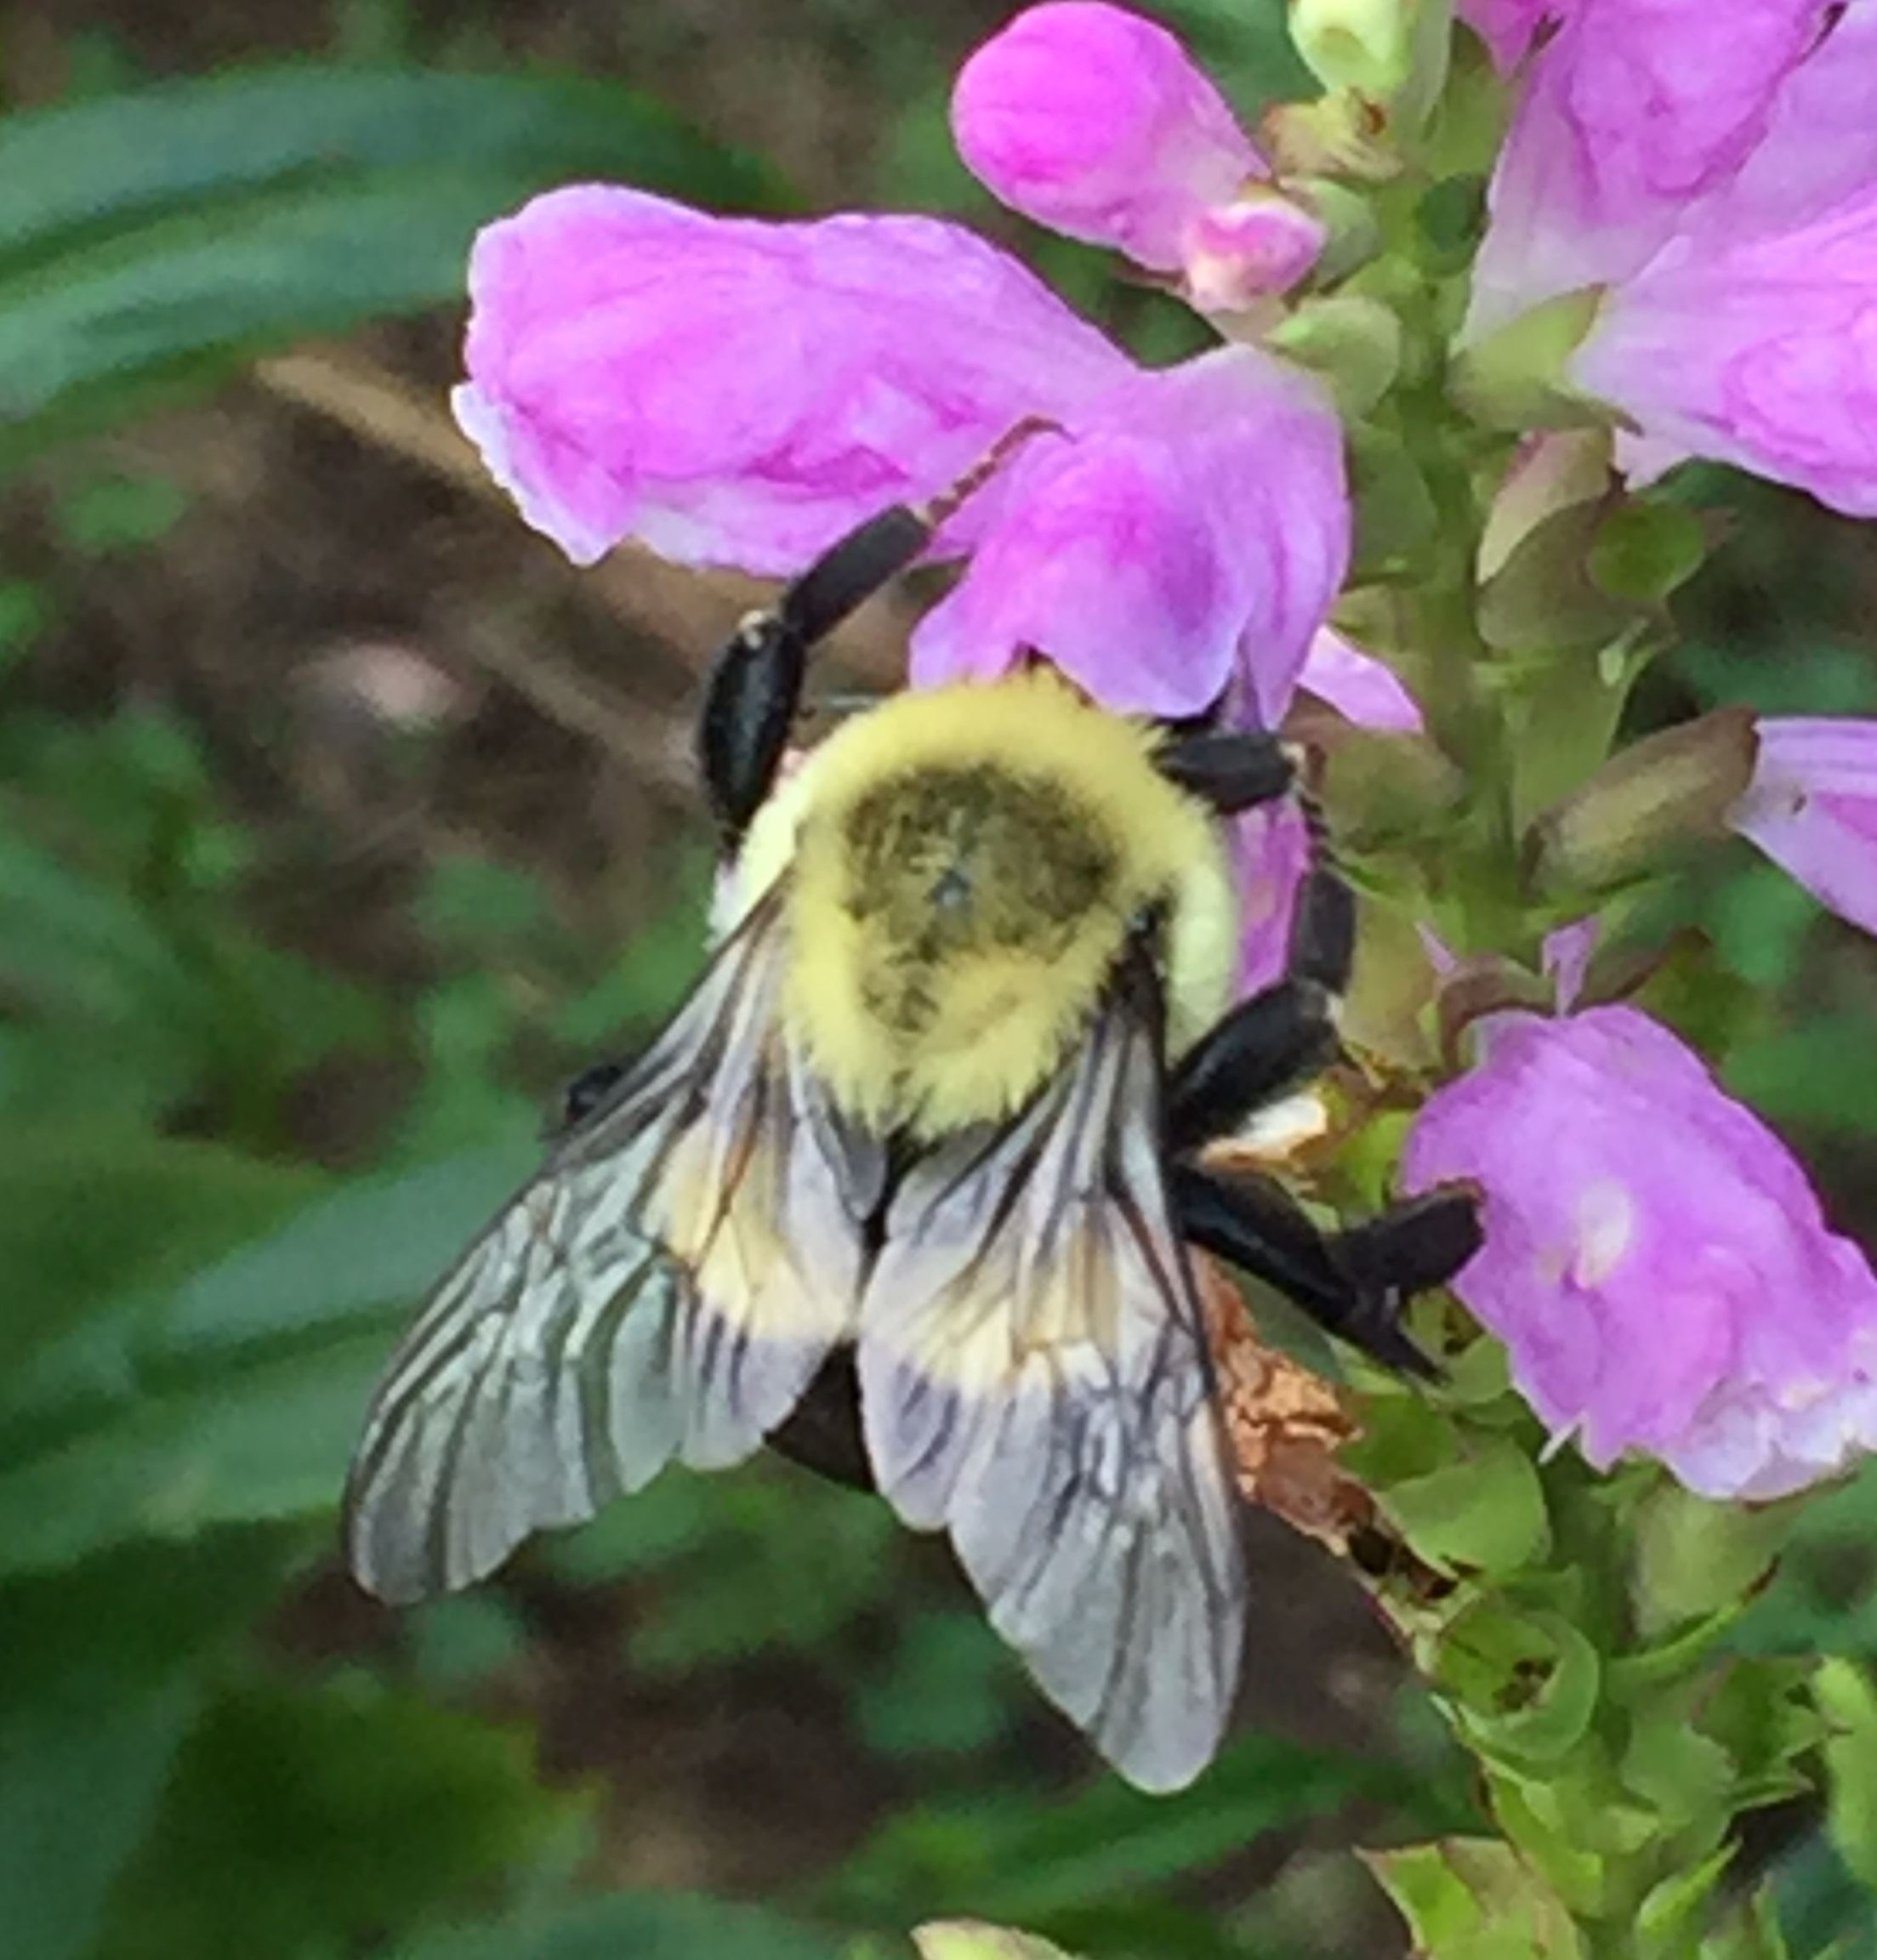 A bumble bee on a pink flower